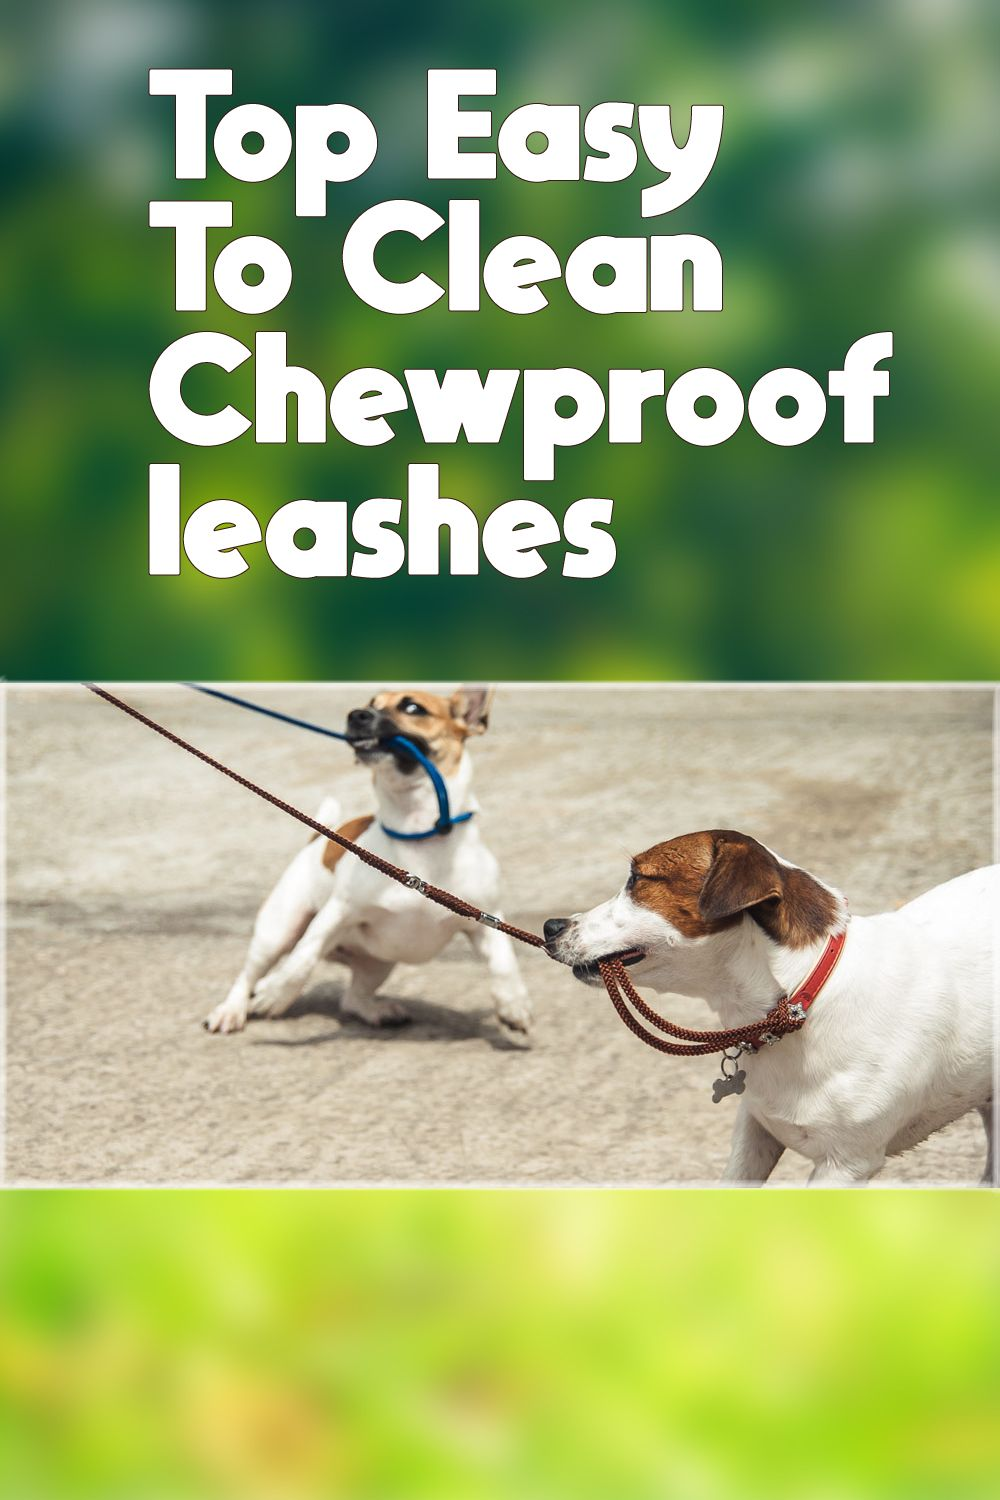 Find Some Best Chew Proof Leashes Dogleashes Dogleashwalmart